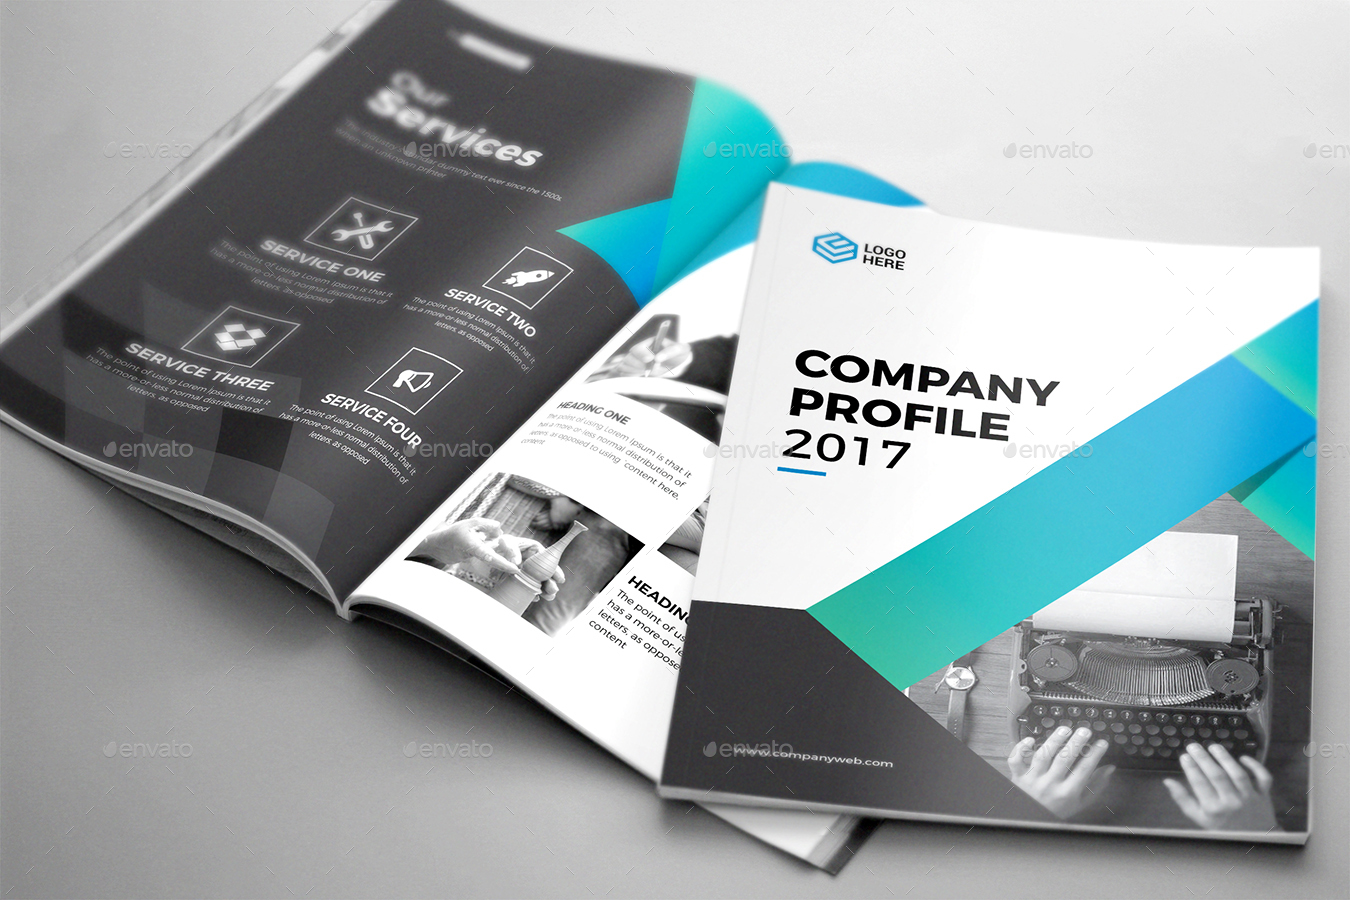 Company Profile by colordroop – Company Profile